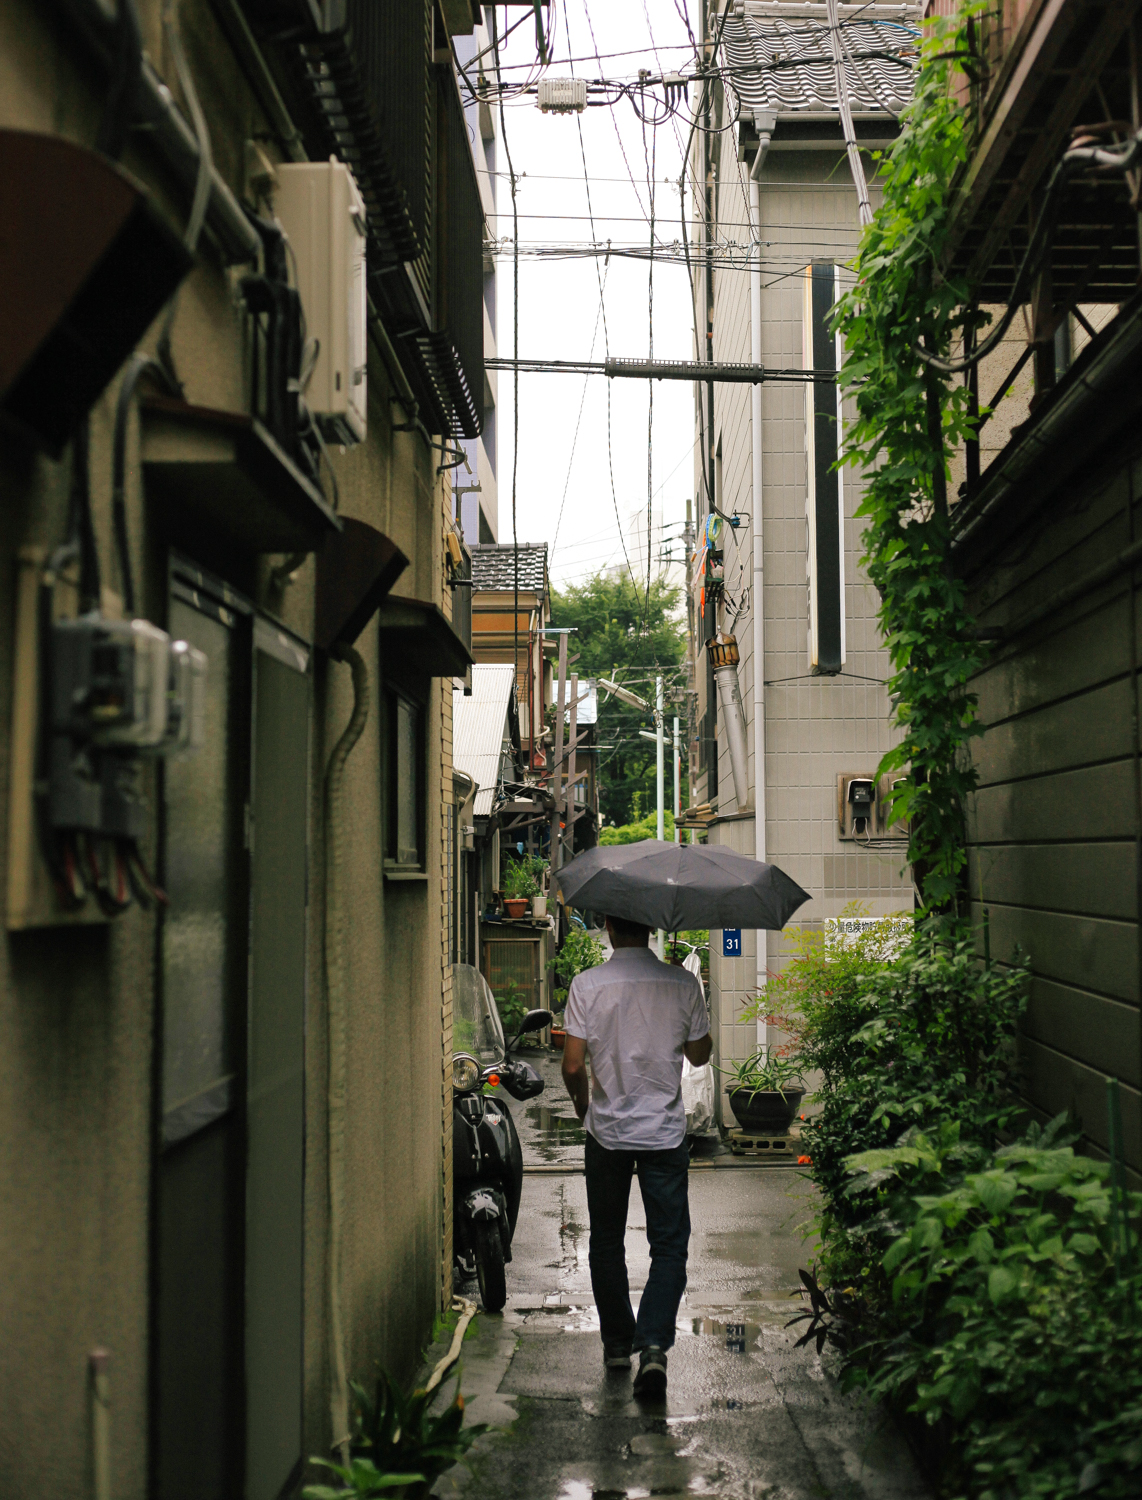 Walking through one of the last days of the rainy season. It's been sunny and (still) humid ever since.